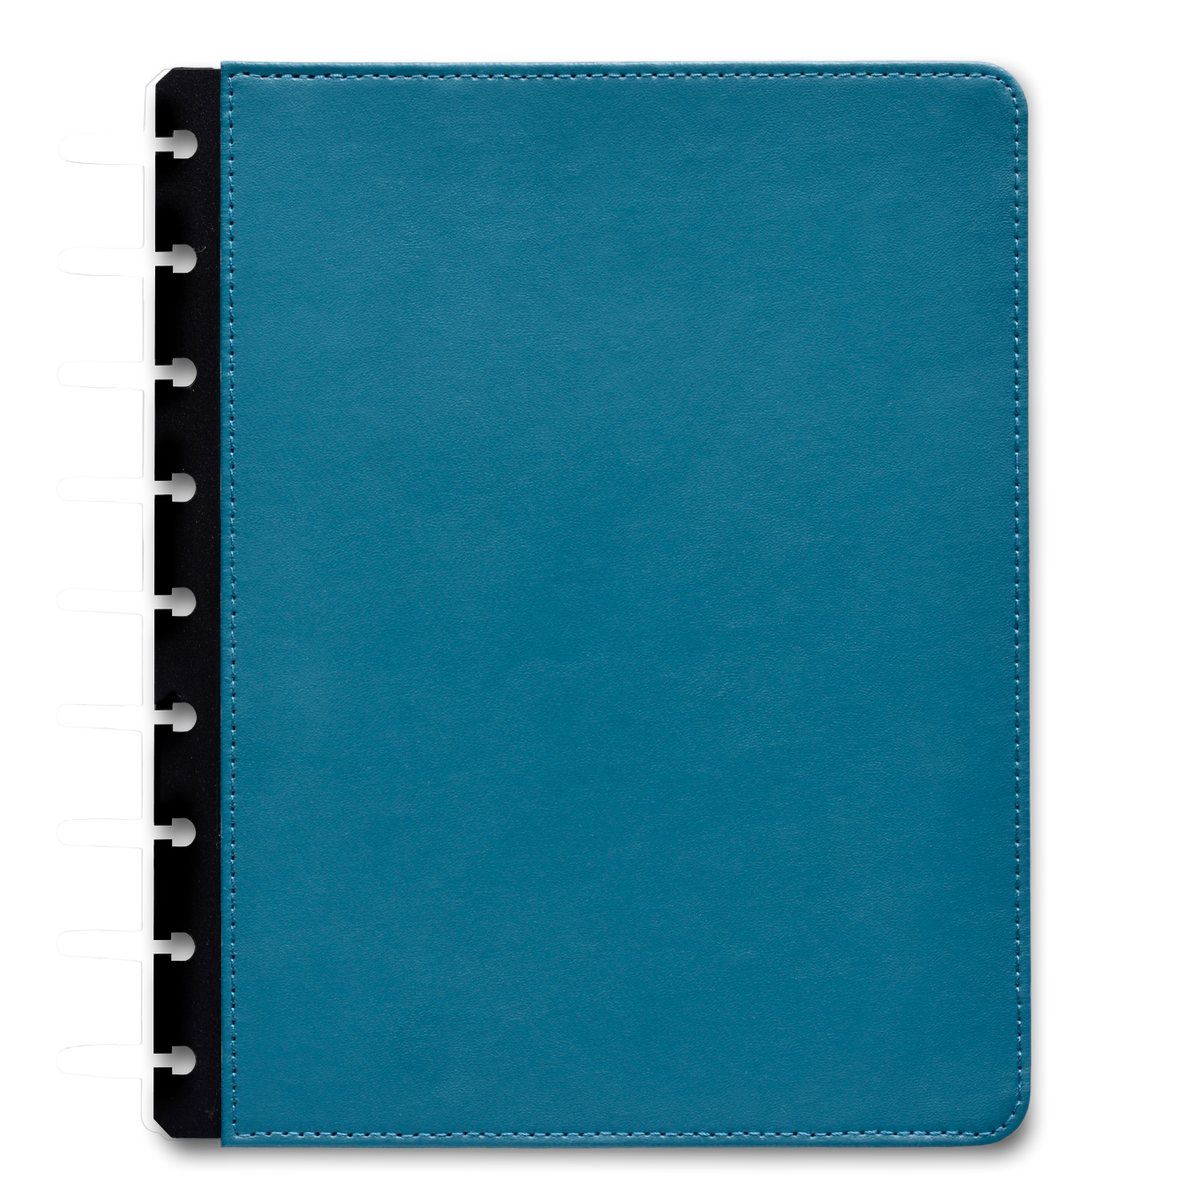 Blue Vegan Leather Customizable Planner Cover